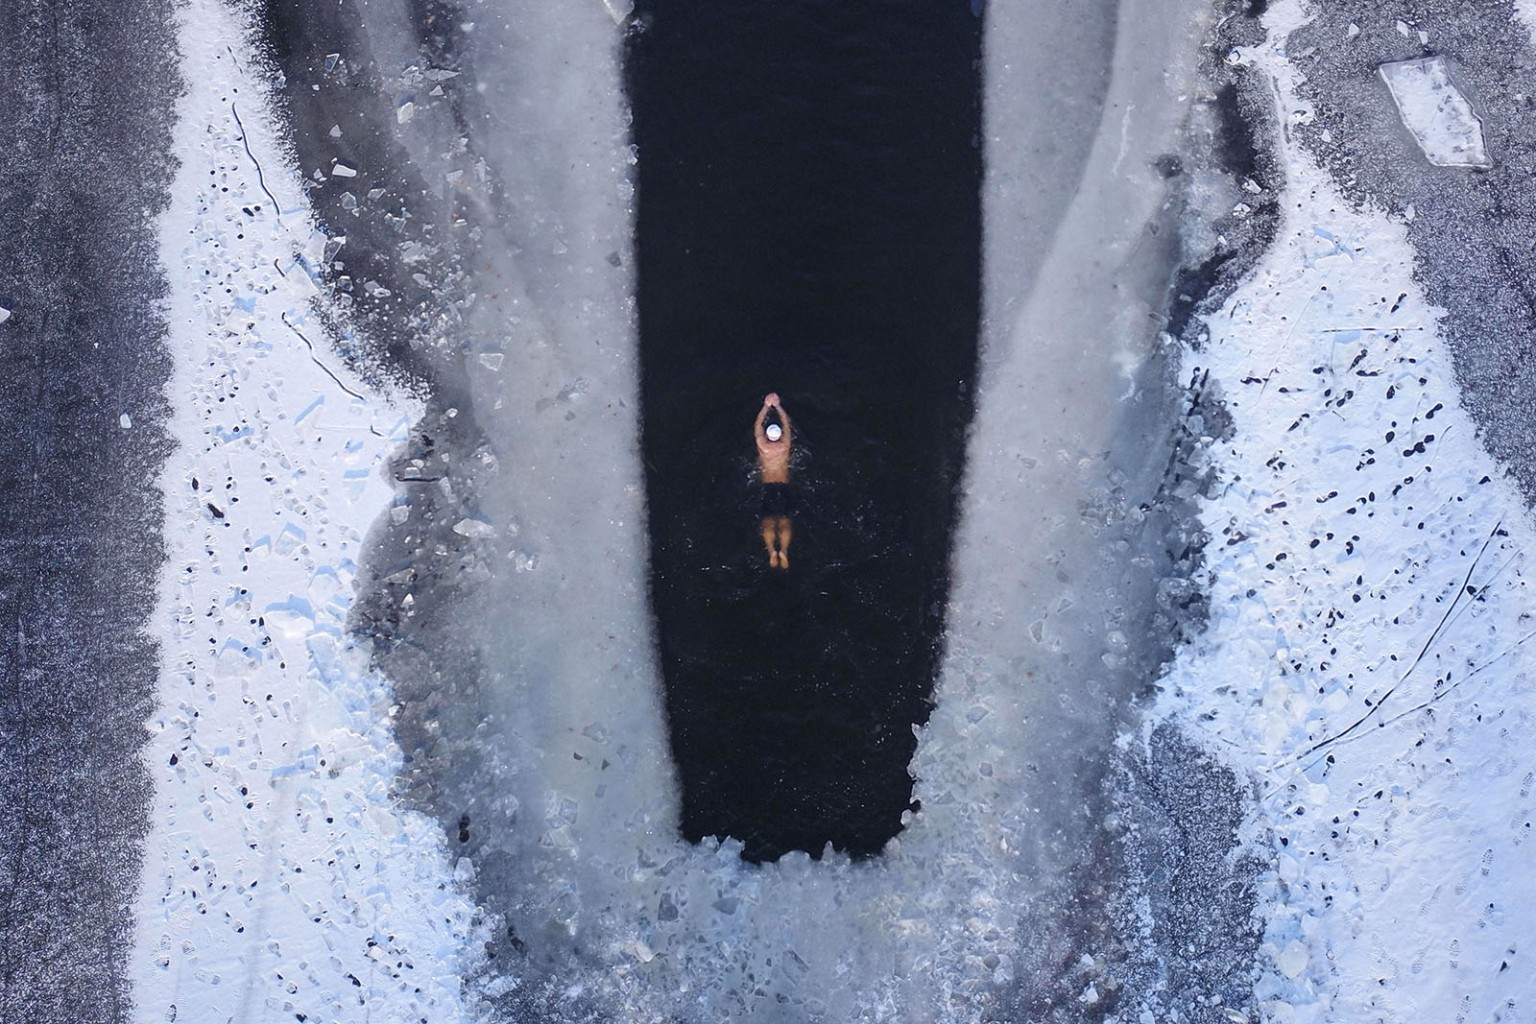 A man swims in a partly frozen lake in Shenyang in China's northeastern Liaoning province on Dec. 10. STR/AFP/Getty Images